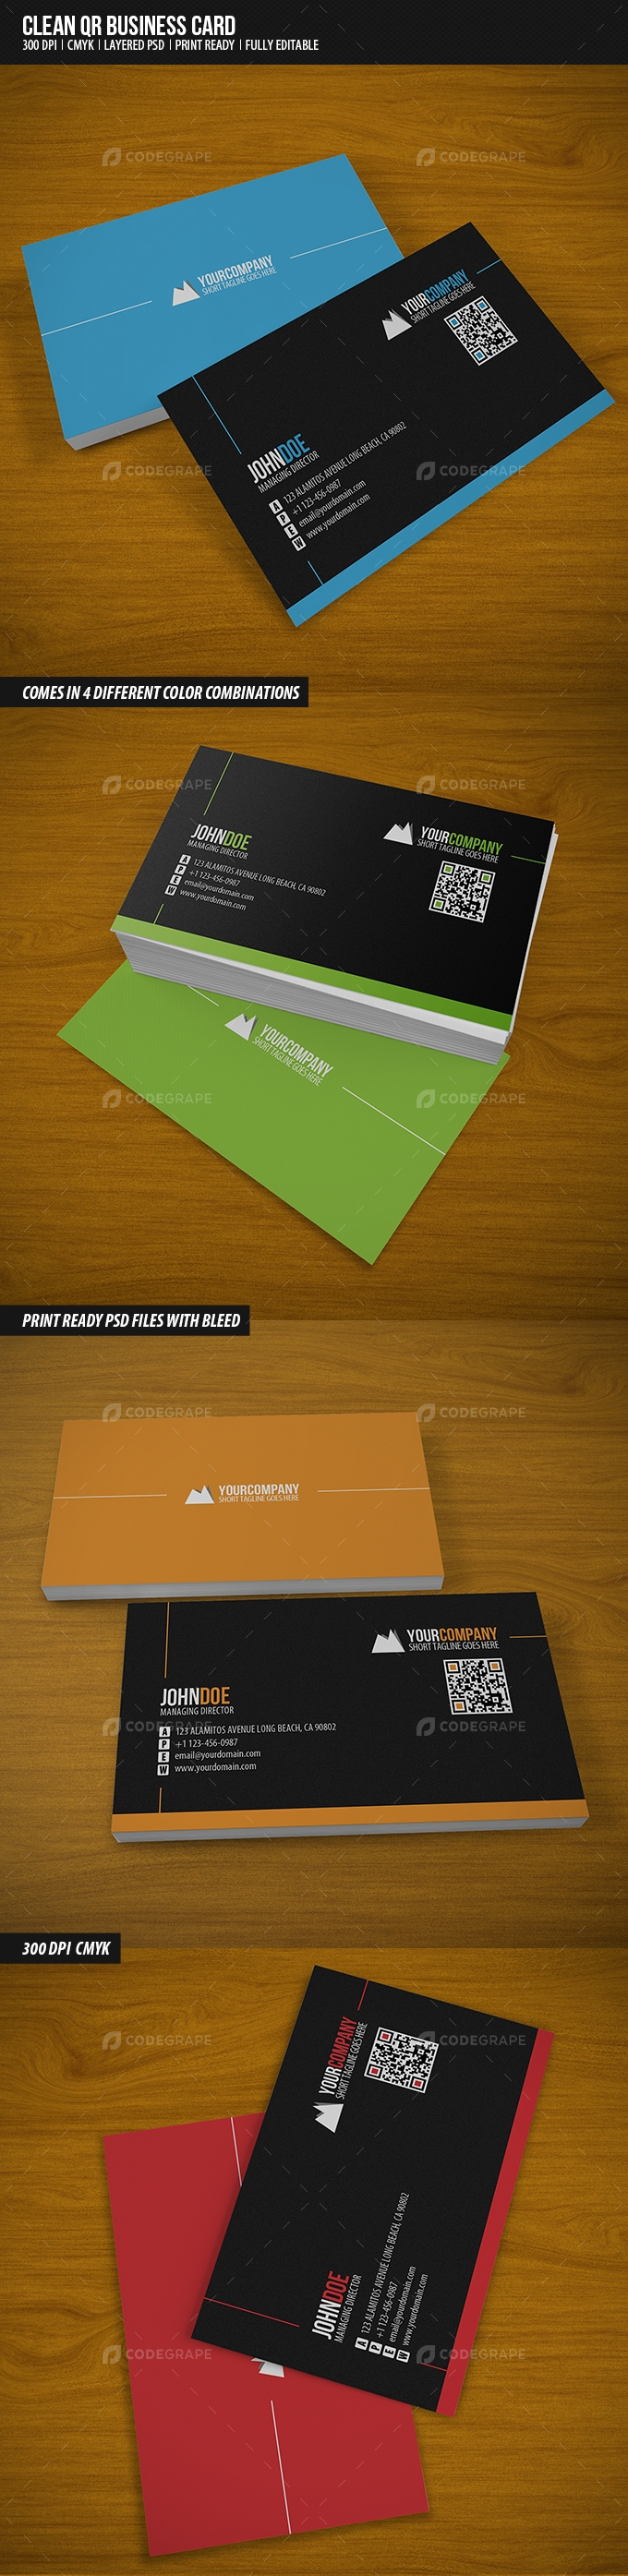 Clean QR Business Card